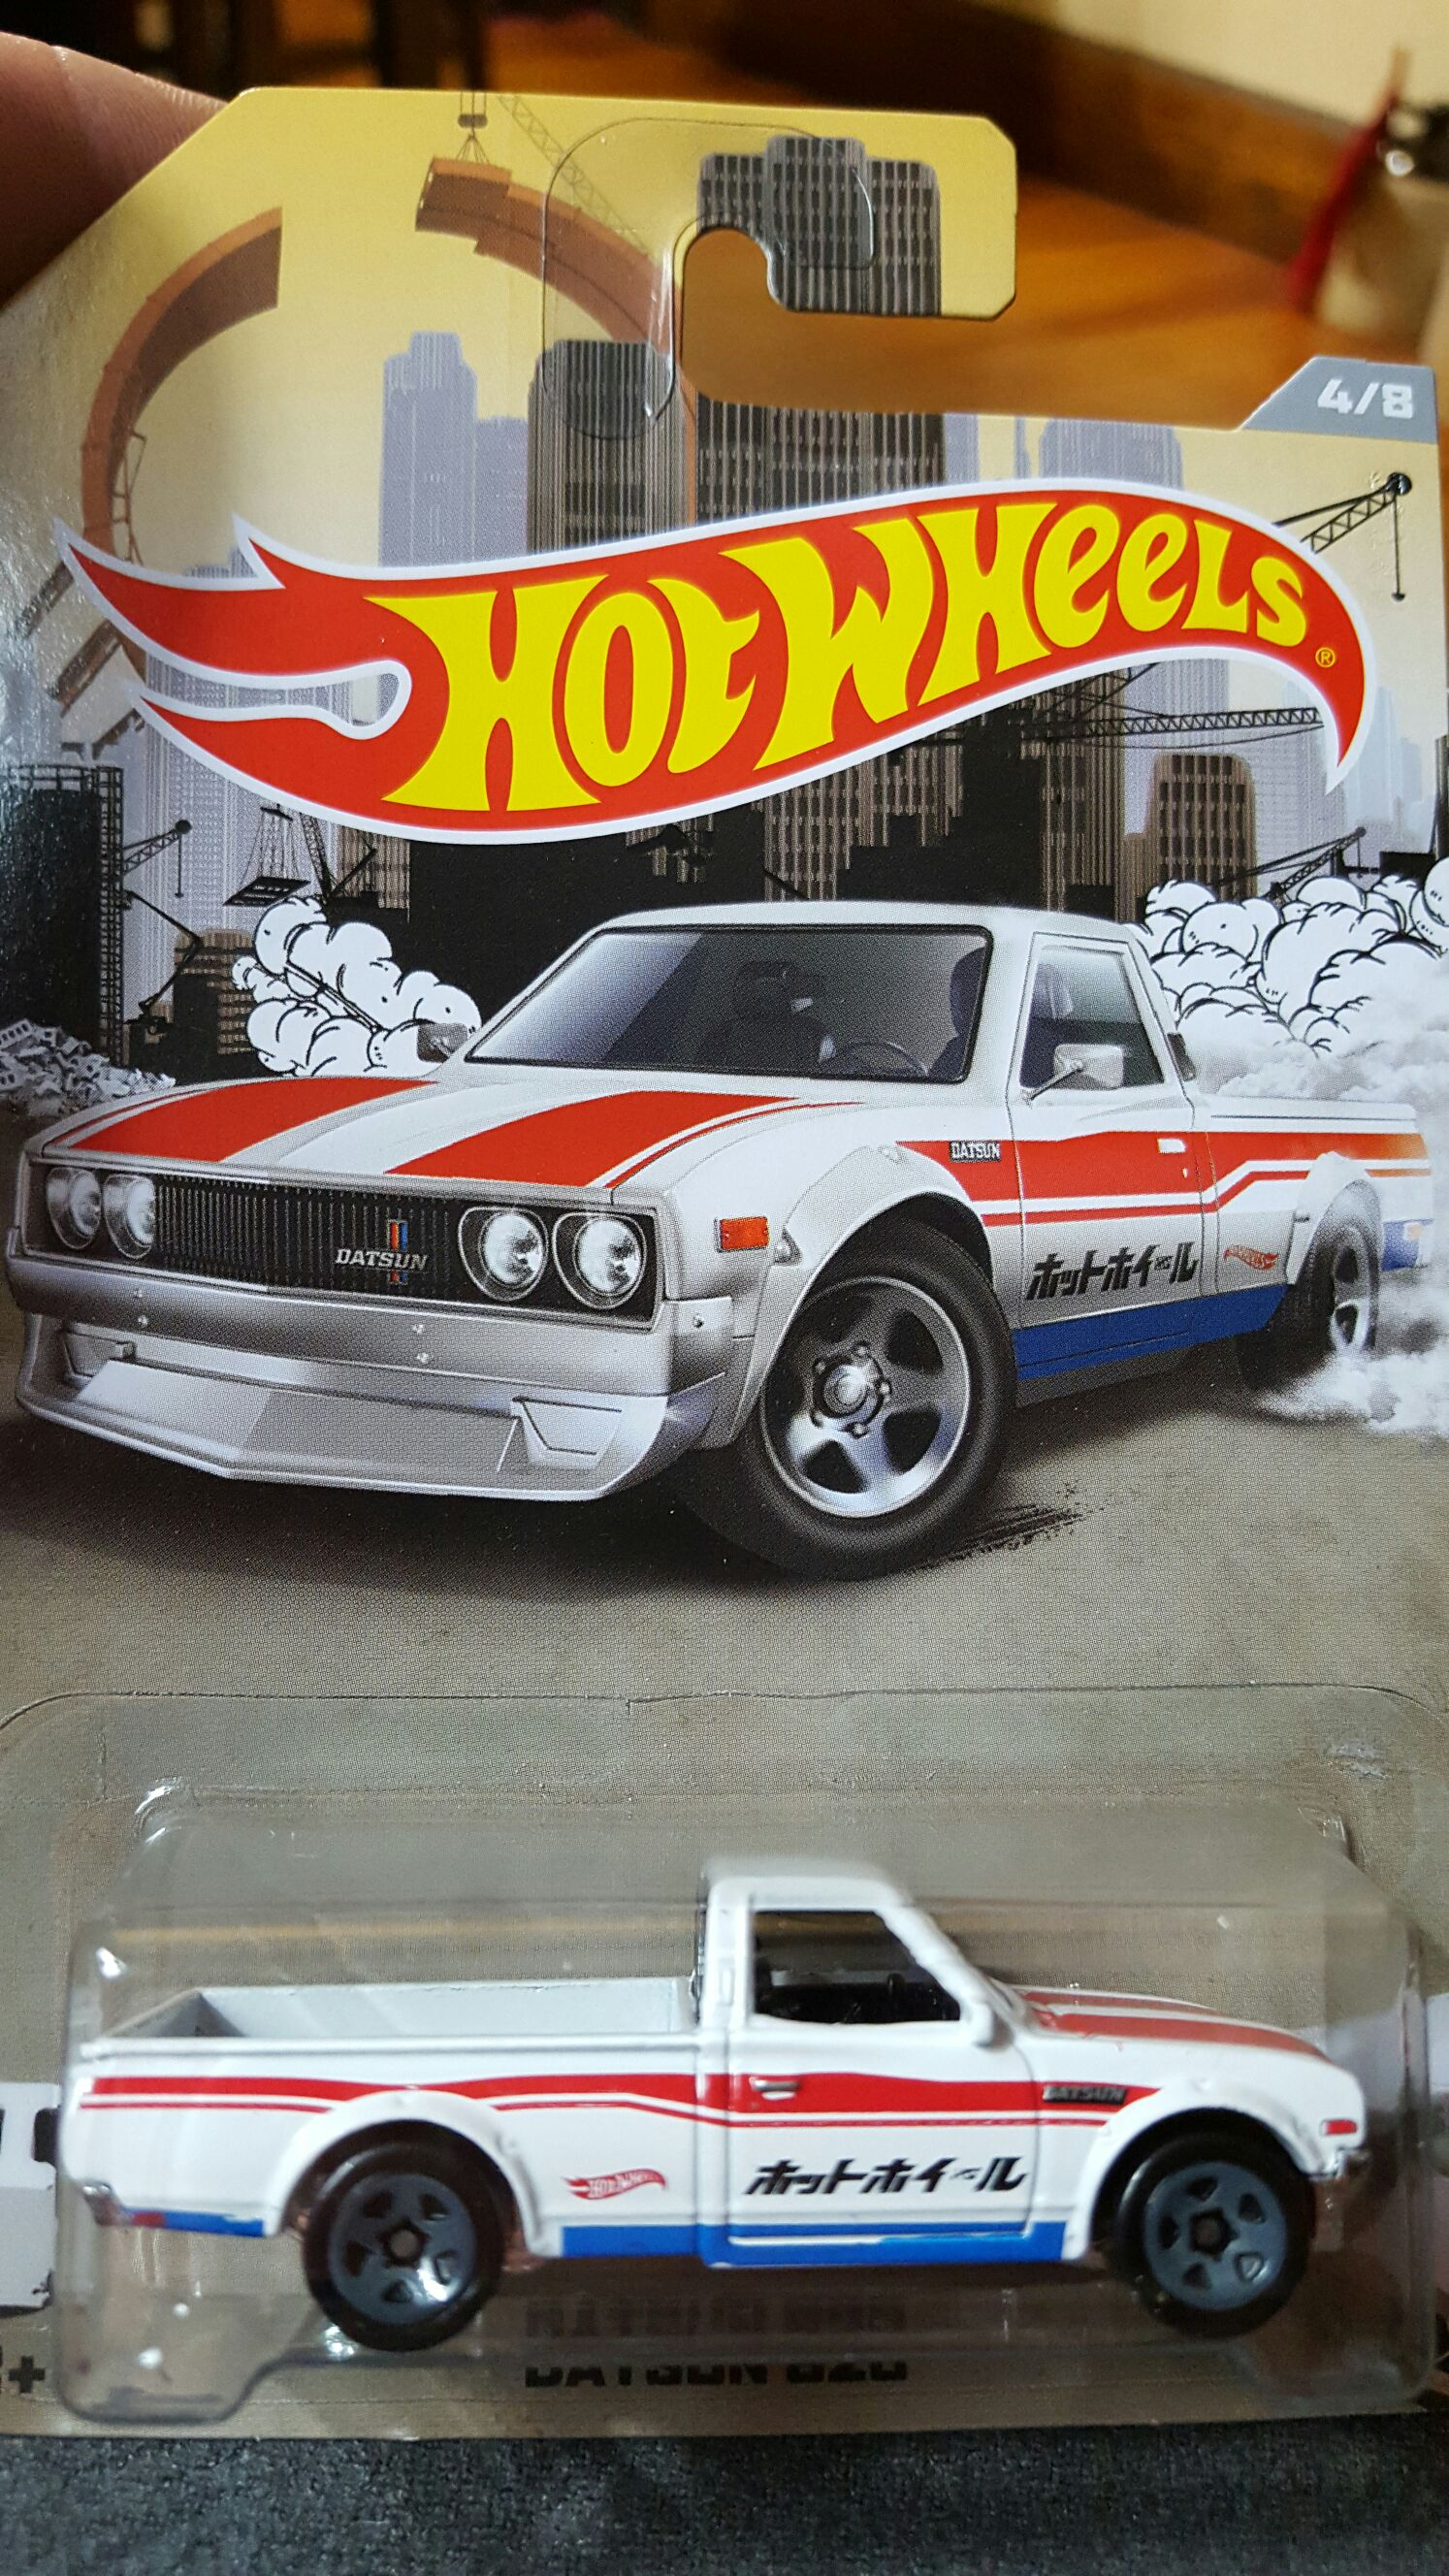 Datsun 620 Toy Car Die Cast And Hot Wheels 2015 From Sort It Apps Hotwheels Red Front Image